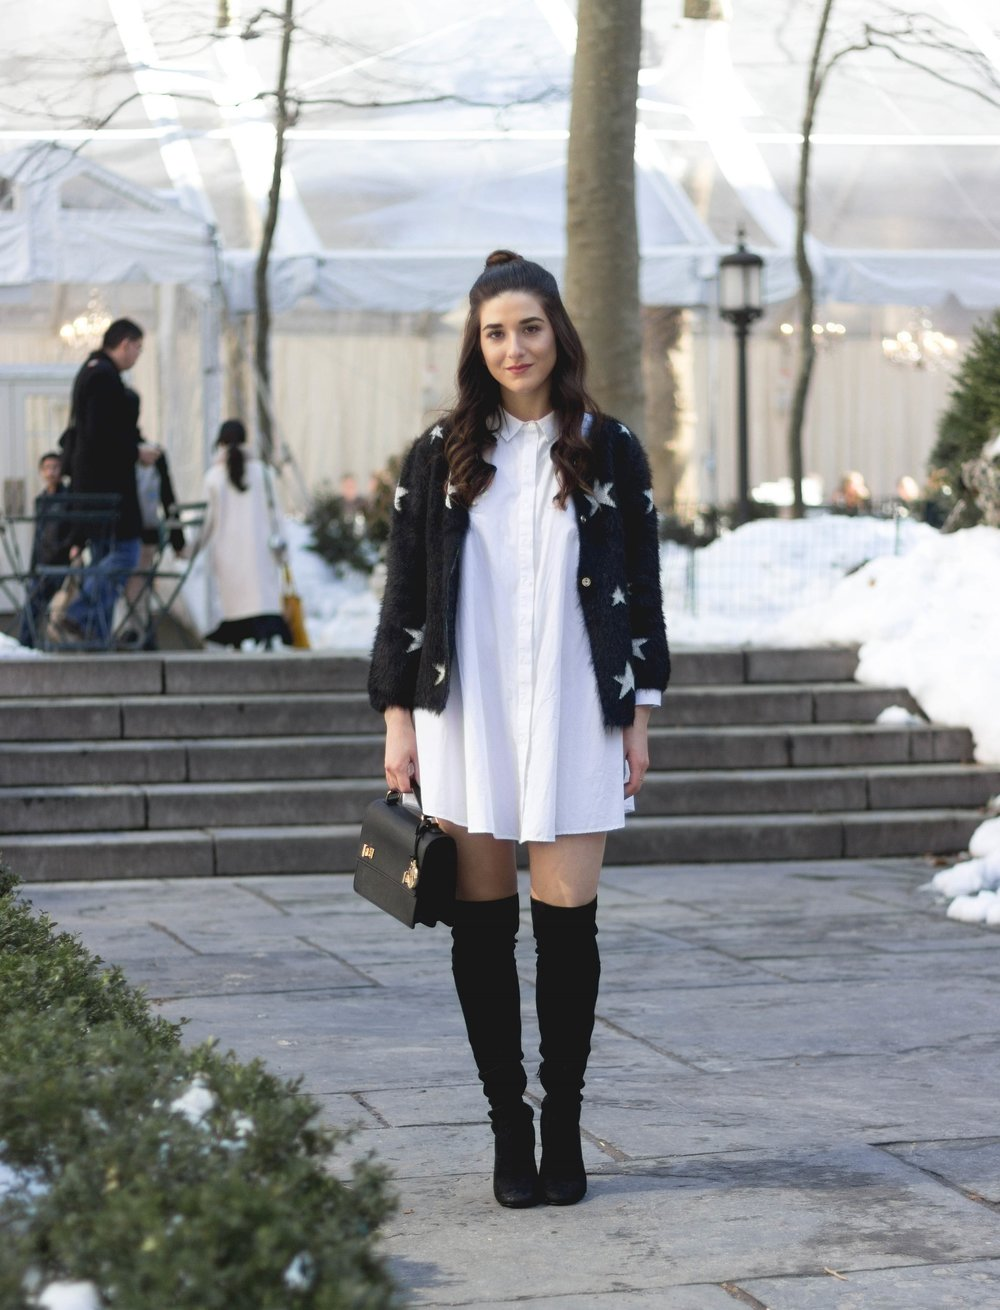 Trescool Star Jacket How NYC Changed My Style Esther Santer Fashion Blog NYC Street Style Blogger Outfit OOTD Trendy Henri Bendel Black Bag Over The Knee Boots Bun Topknot Purse Women Shoes Girl Zara White Button Down Shirt Dress Wearing Shop Shopping.jpg